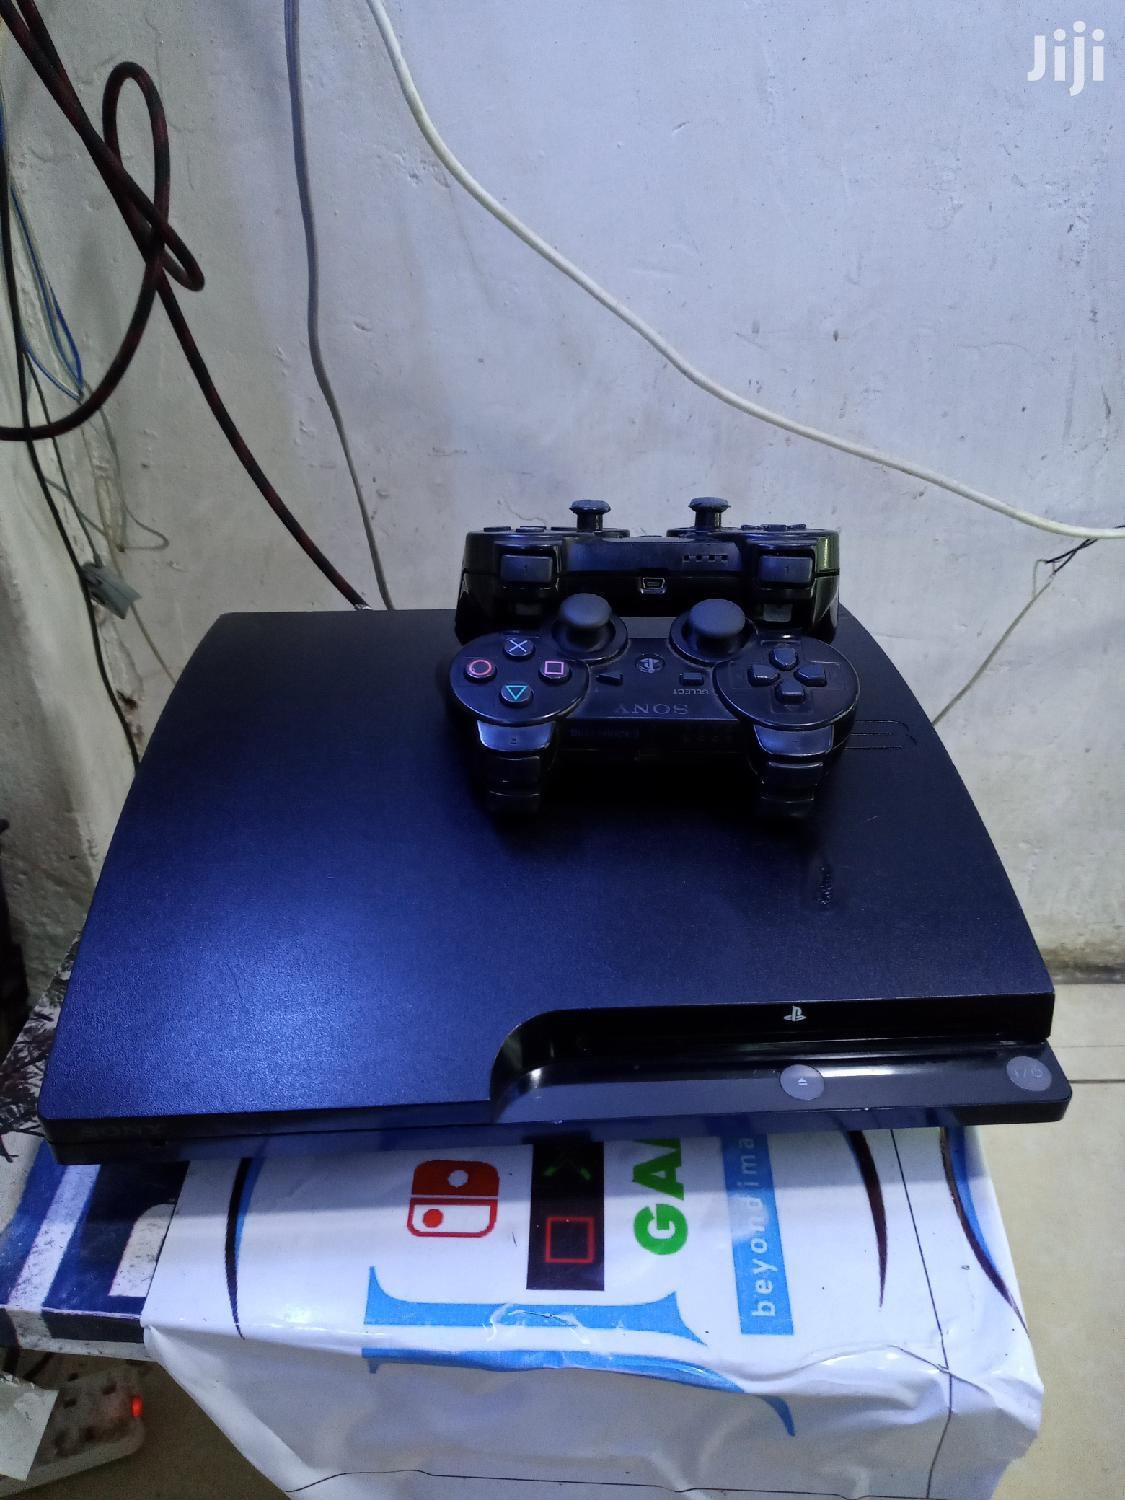 Almost New Ps3 Console With 2 Controllers Chiped With 5 Games,,,500GB